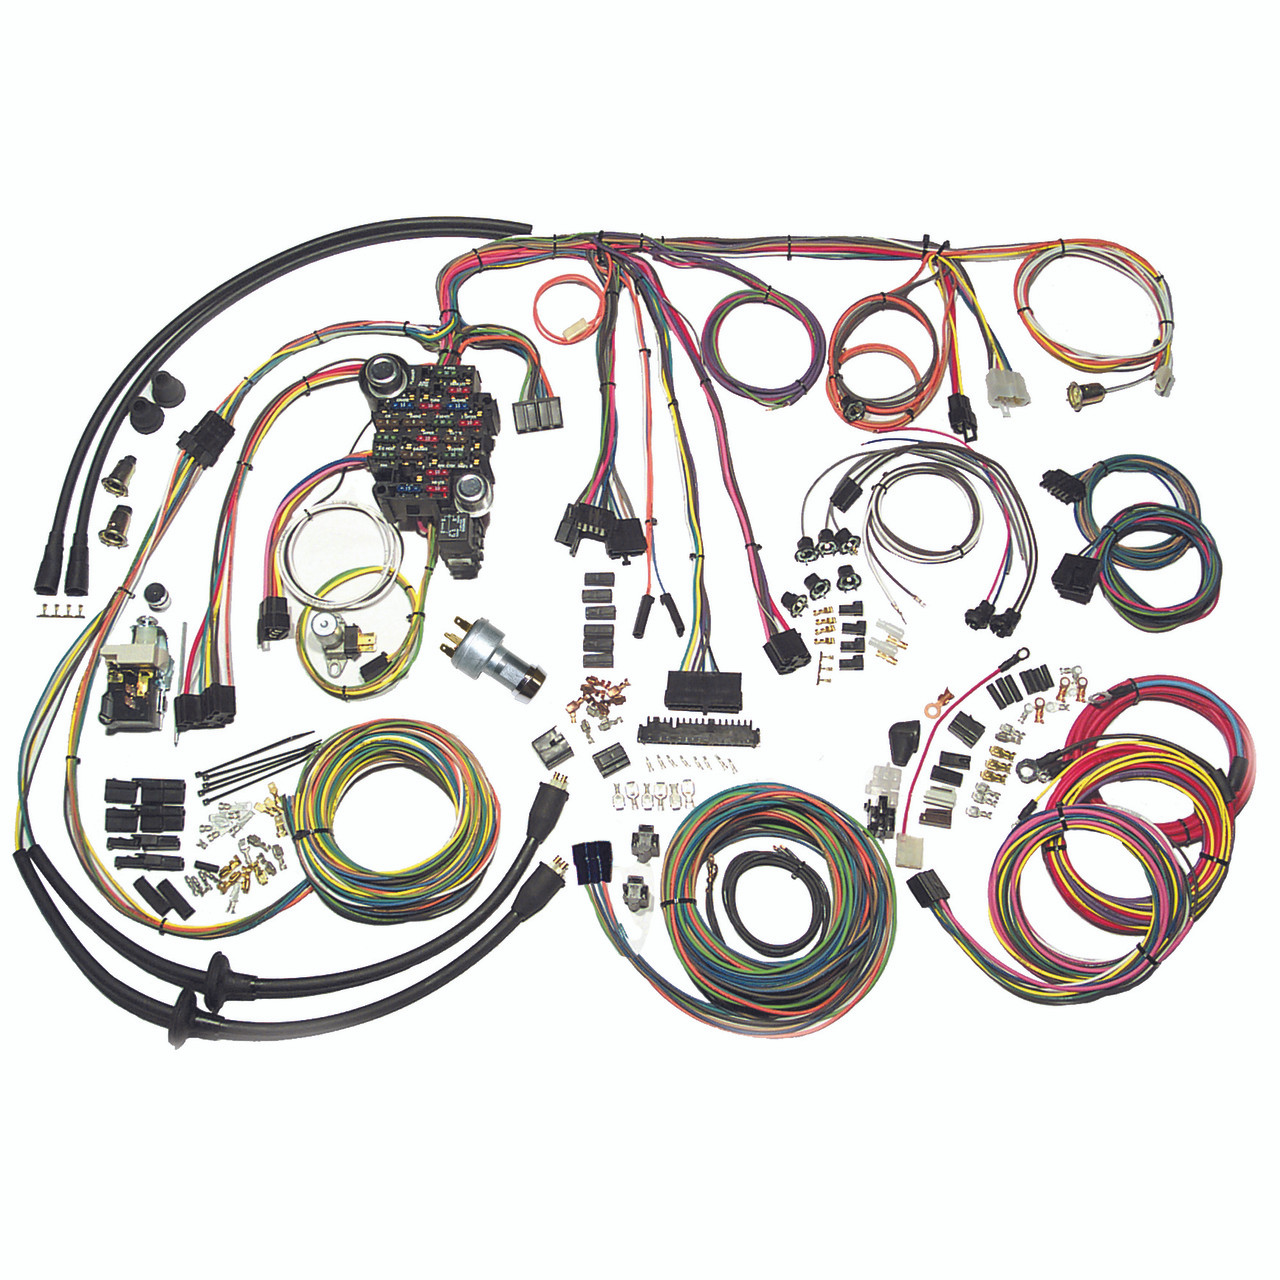 hight resolution of american autowire 1957 chevrolet car classic update complete wiring kit ame 500434